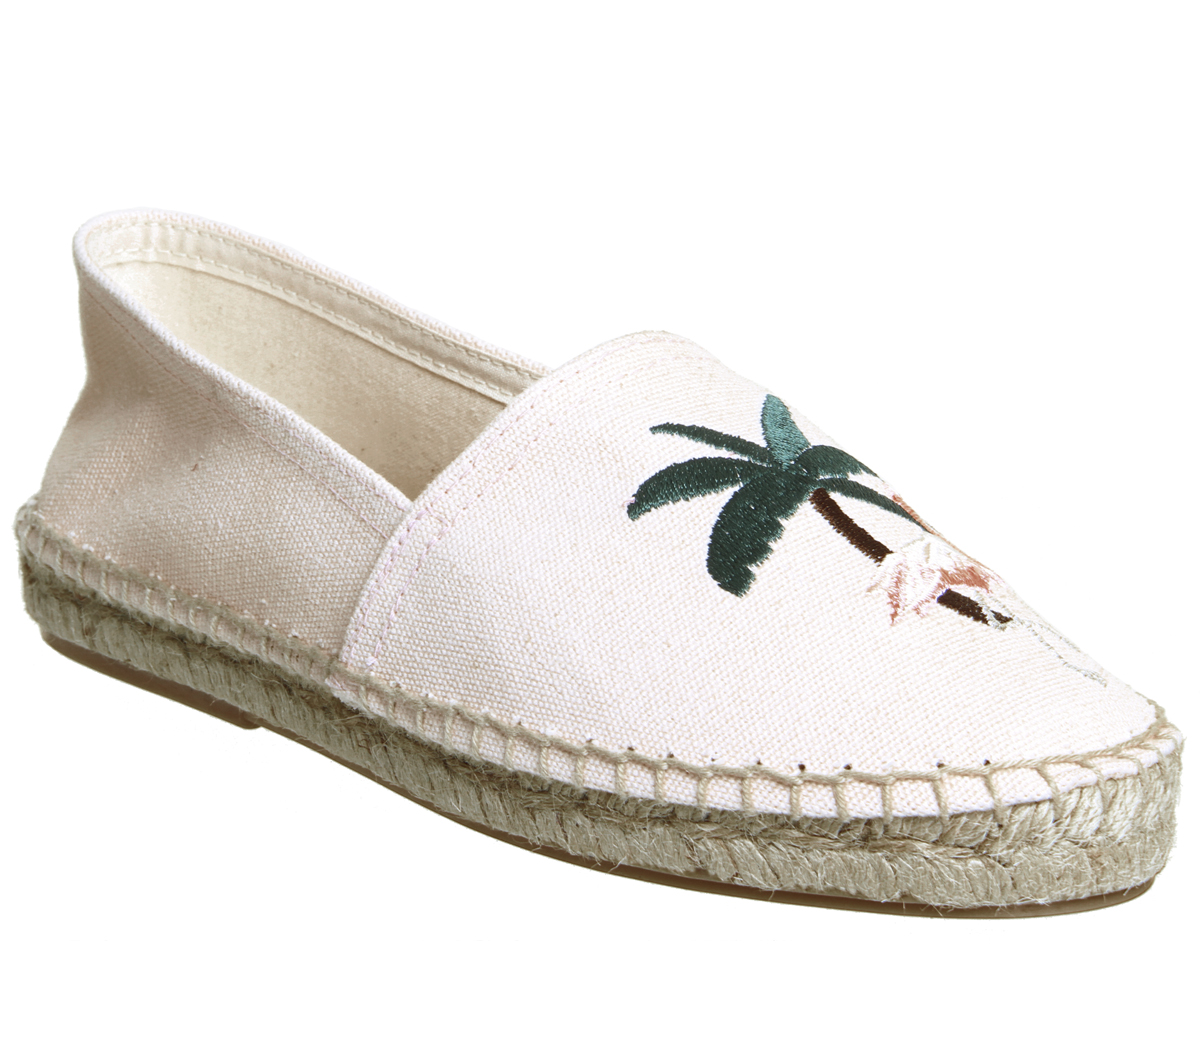 Espadrillas Piatte In Tela Floreale per le donne Made in France Taglia 41 EUUK 8